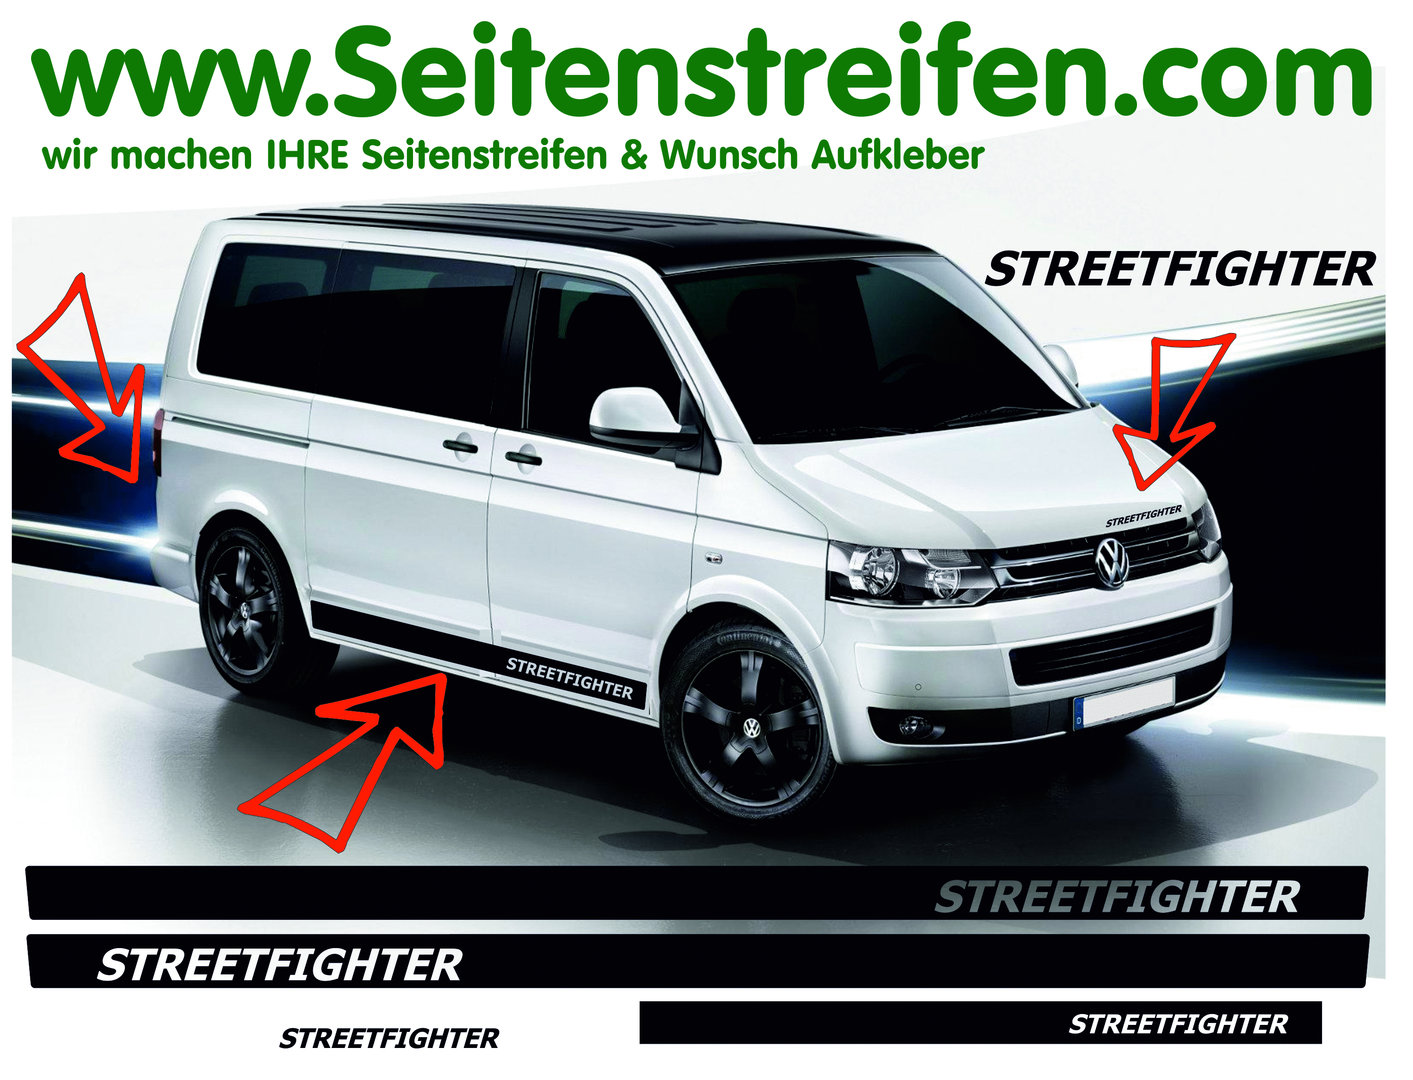 VW Bus T4 T5 T6 - STREETFIGHTER - Side Stripes Graphics Decals Sticker Kit - N° 9768